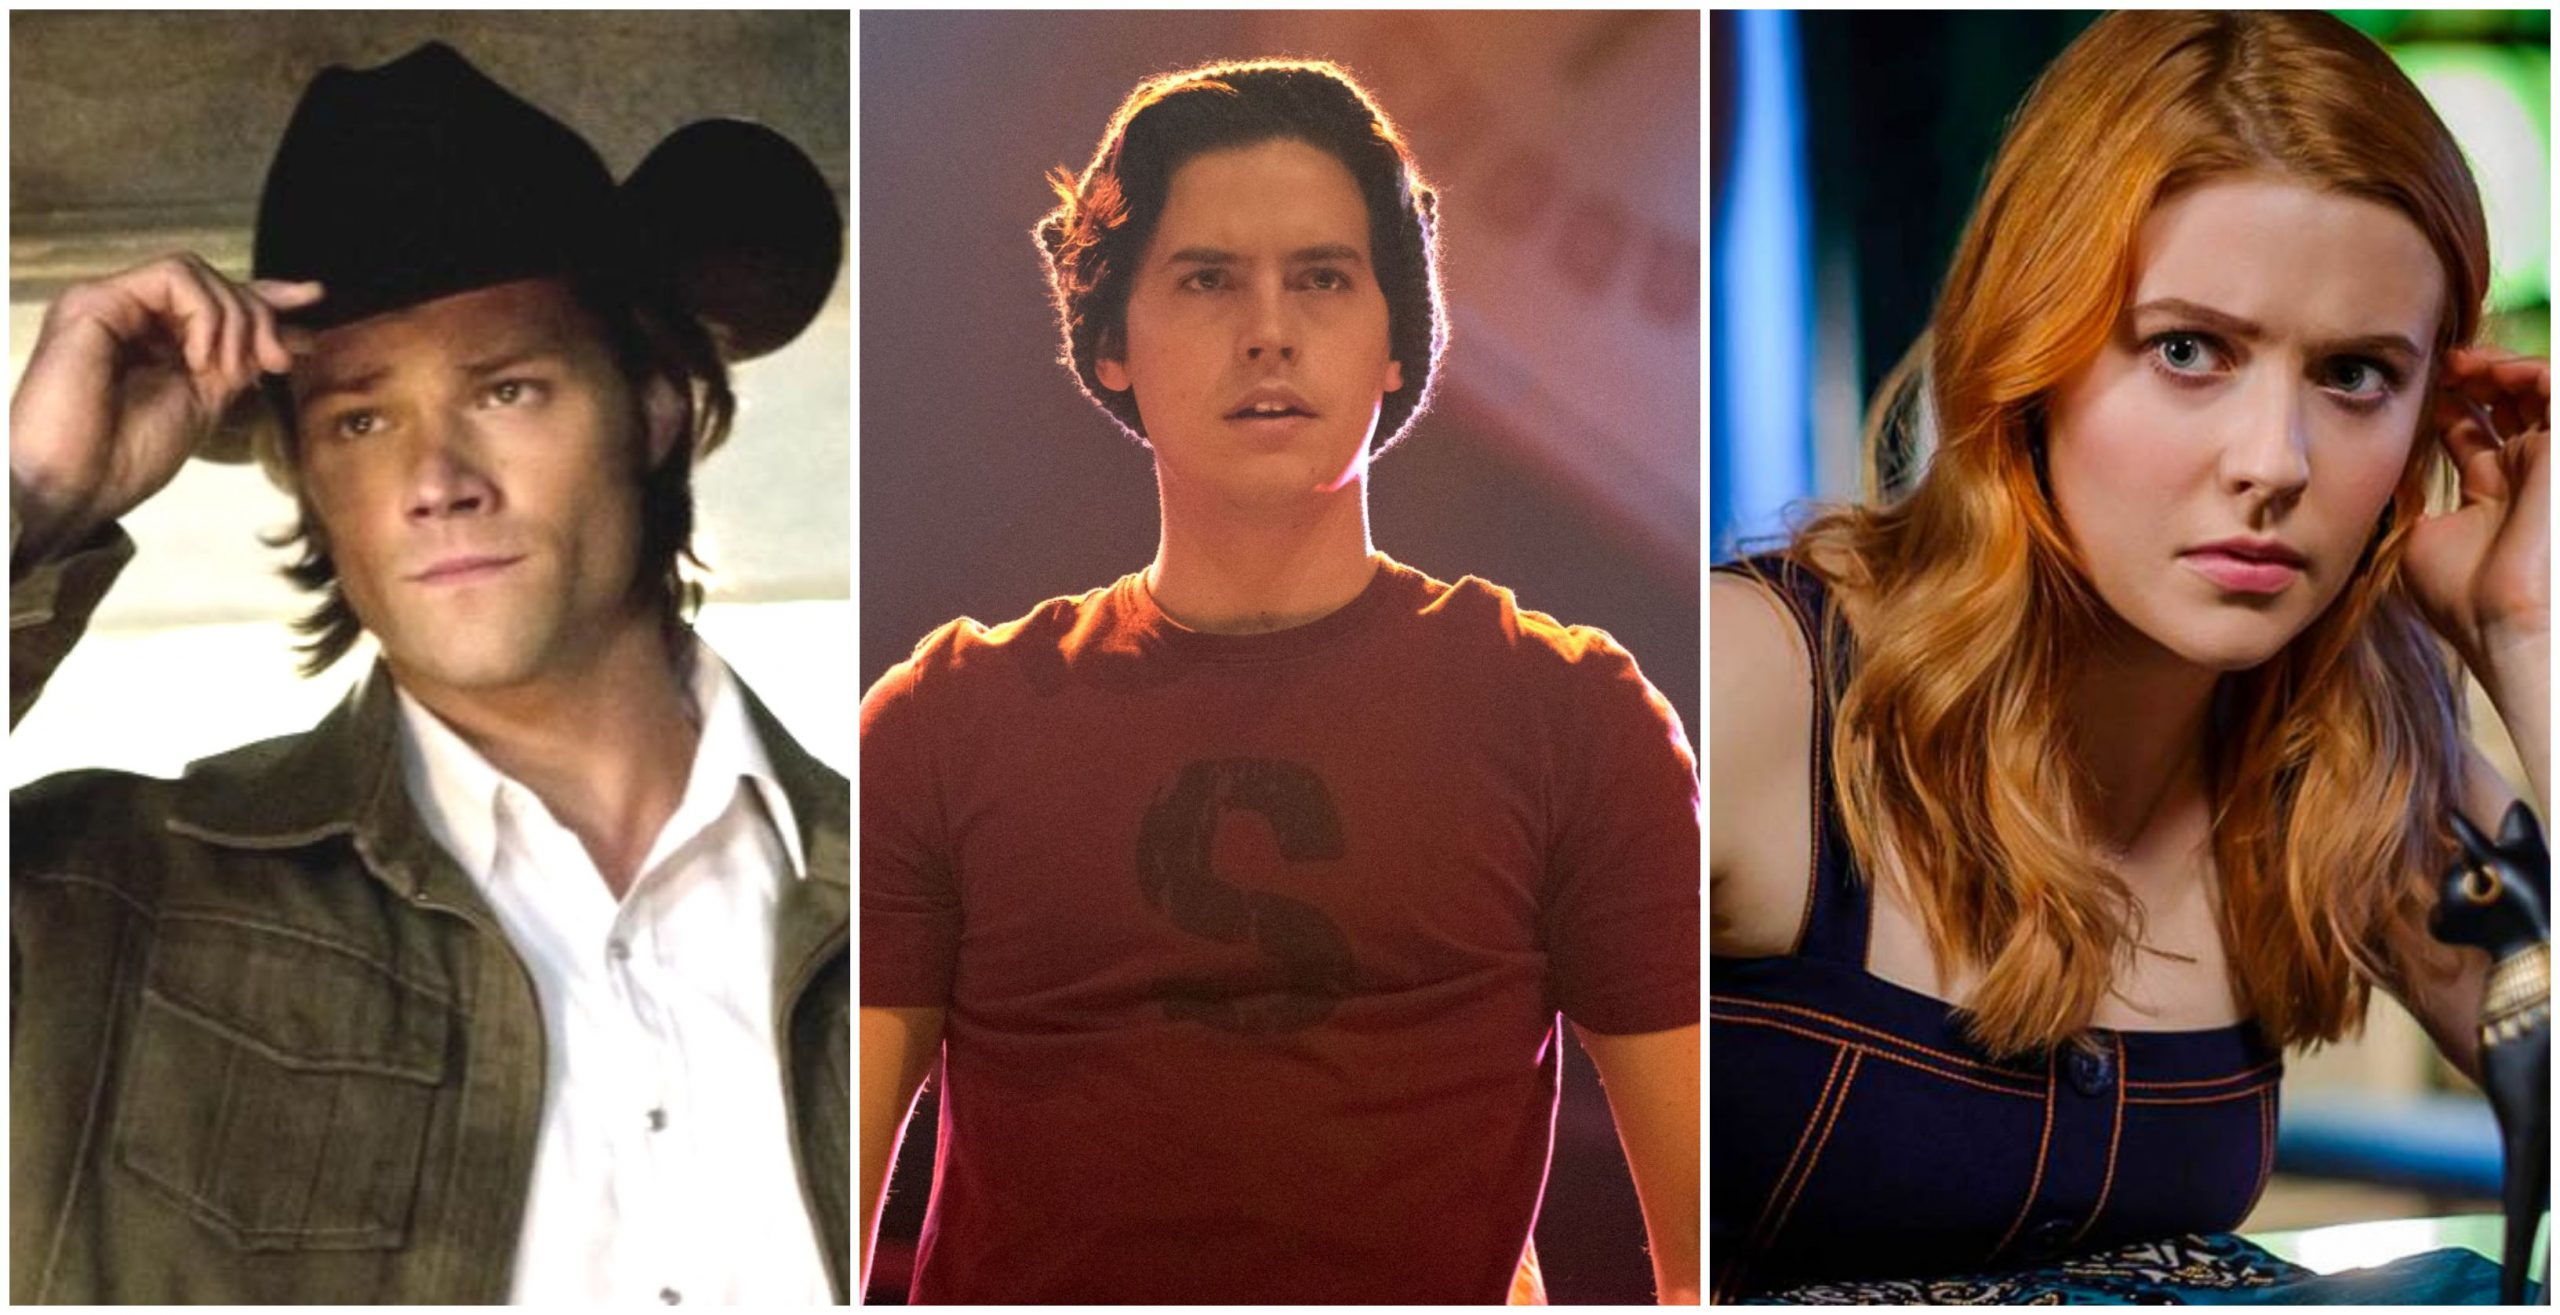 CW renews a whopping 12 shows for 2021-2022 season